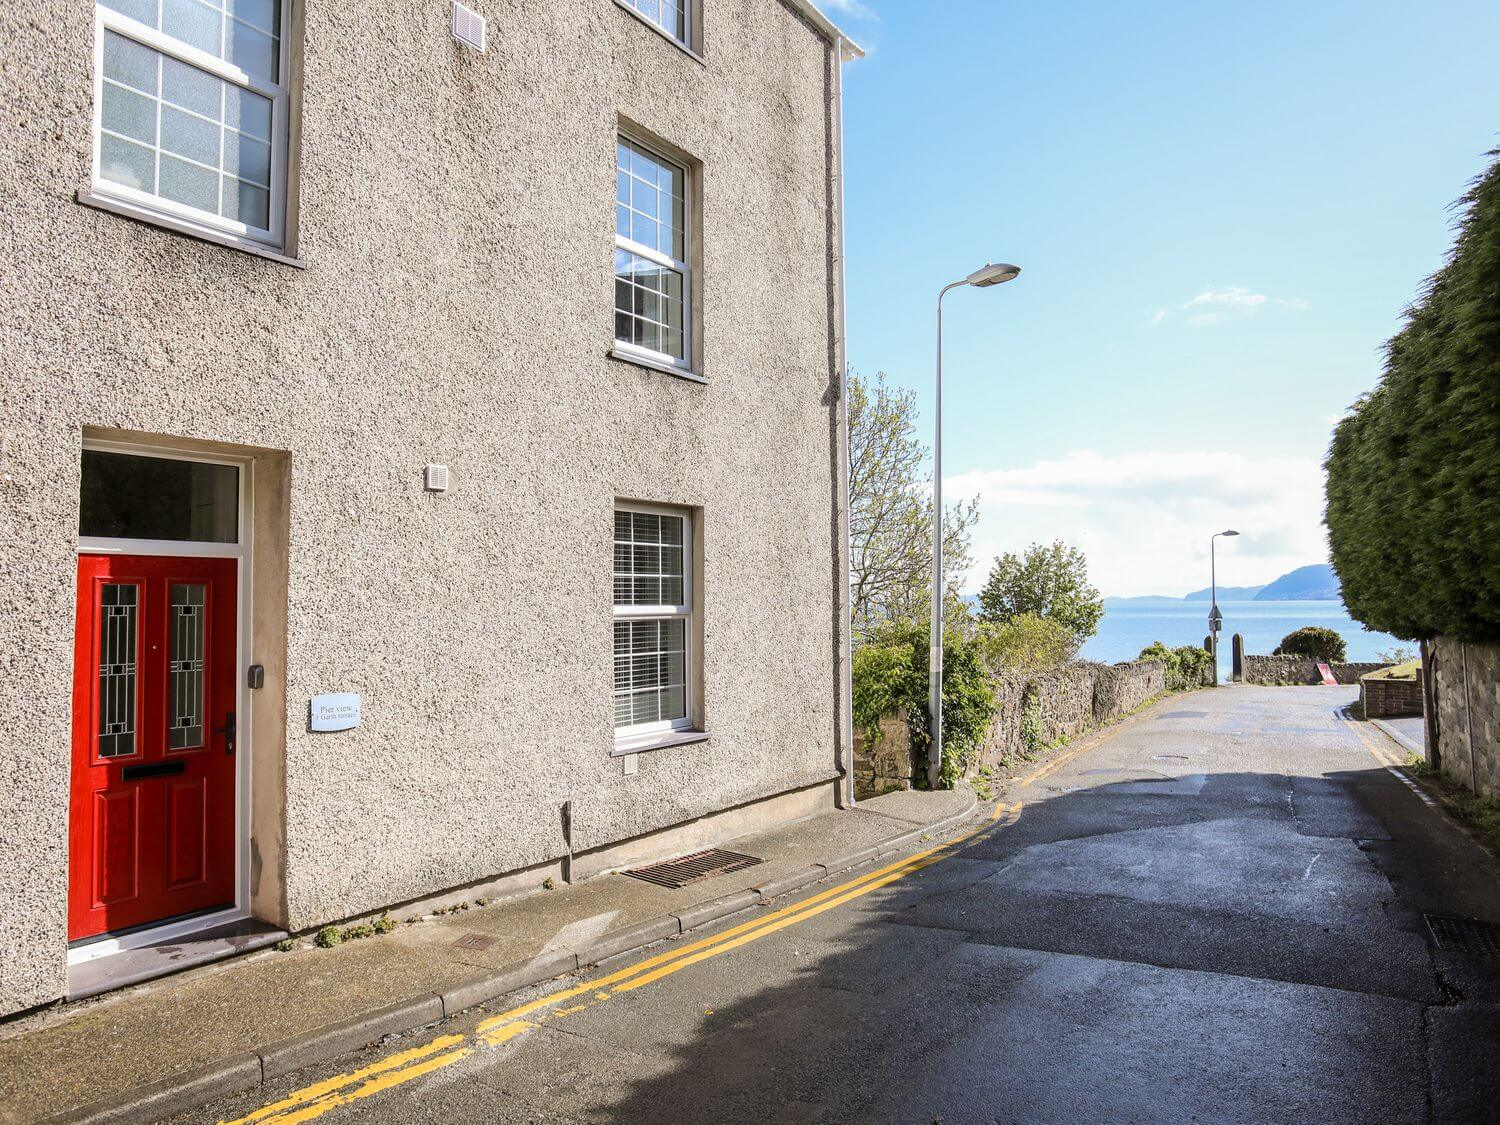 Pier View, 1 Garth Terrace Holiday Cottage in Bangor, North Wales & Snowdonia